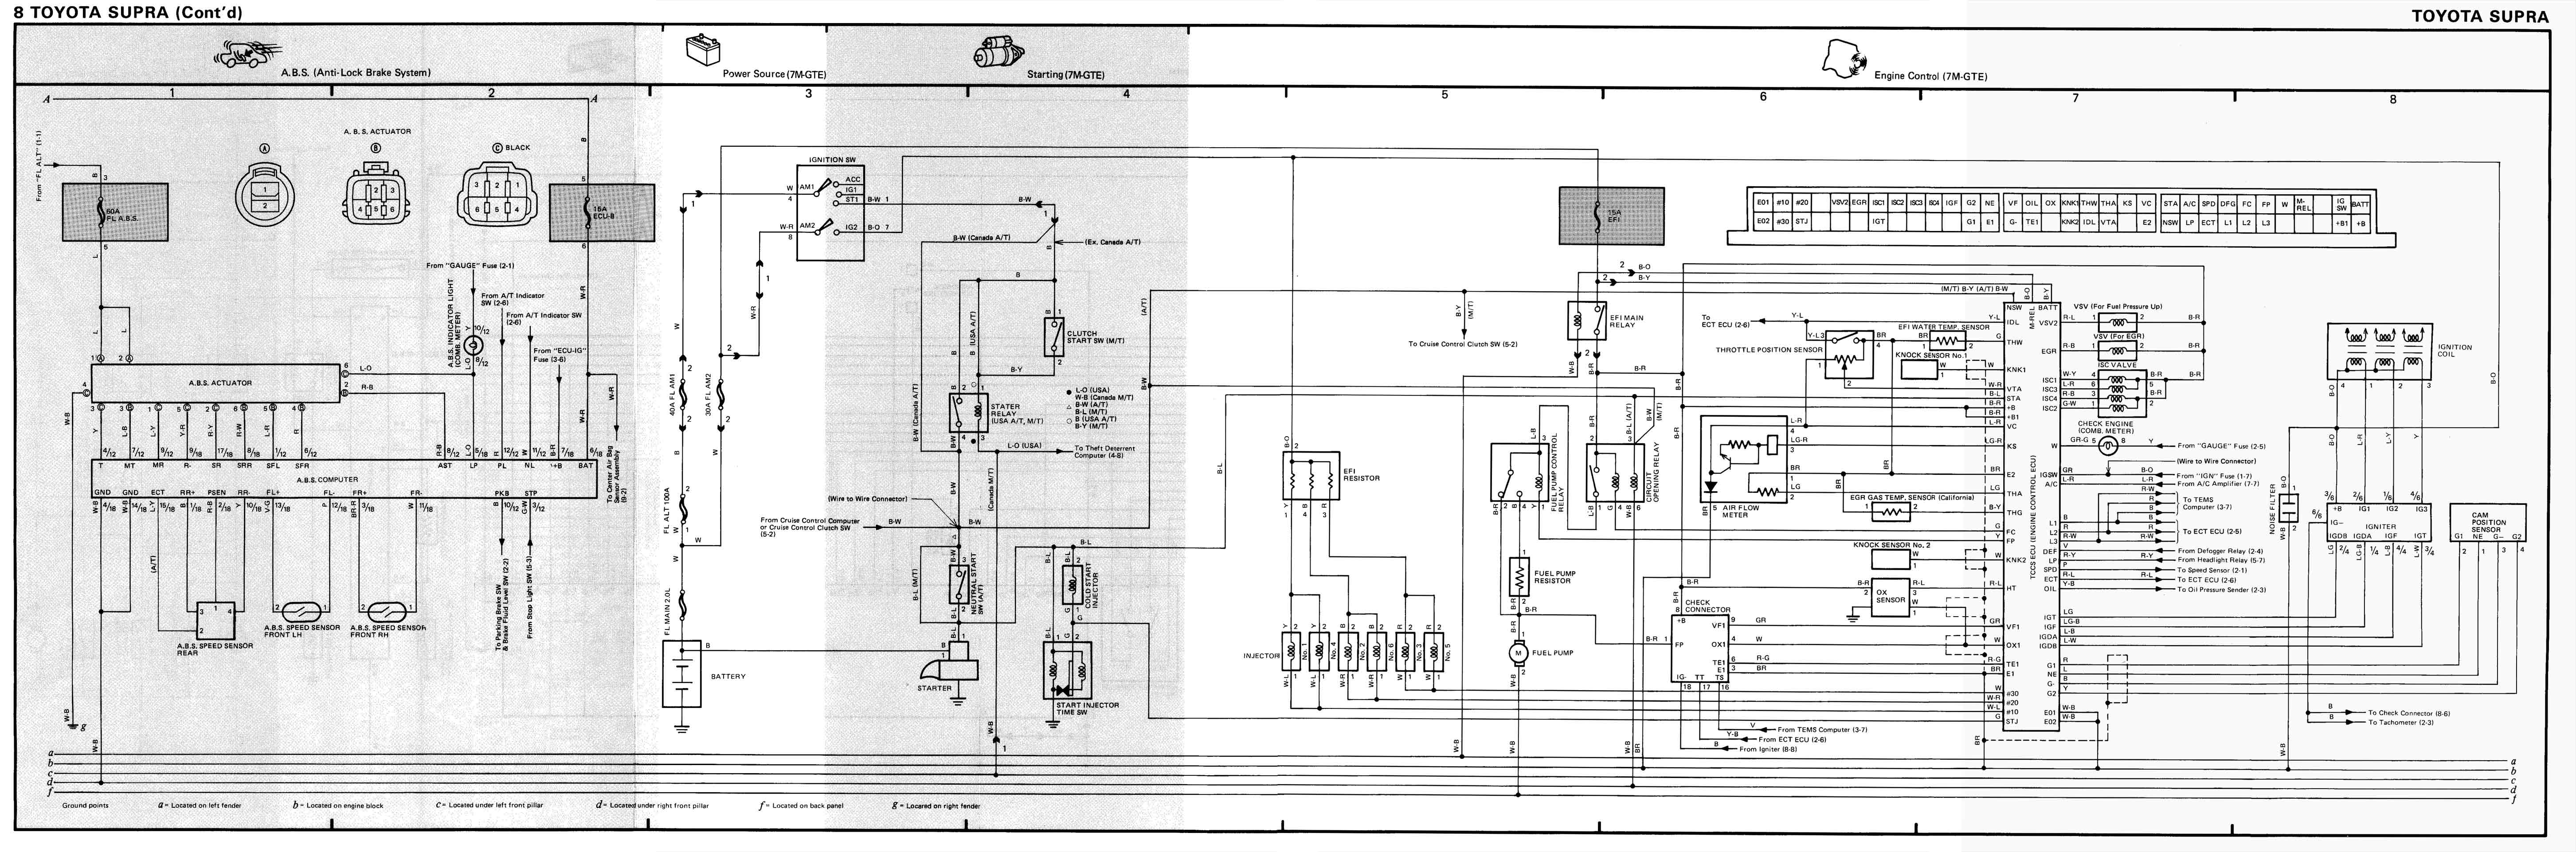 Flyout 8 7mgte wiring harness diagram sr20 wiring diagram \u2022 wiring diagrams mk3 supra 1jz wiring harness at reclaimingppi.co